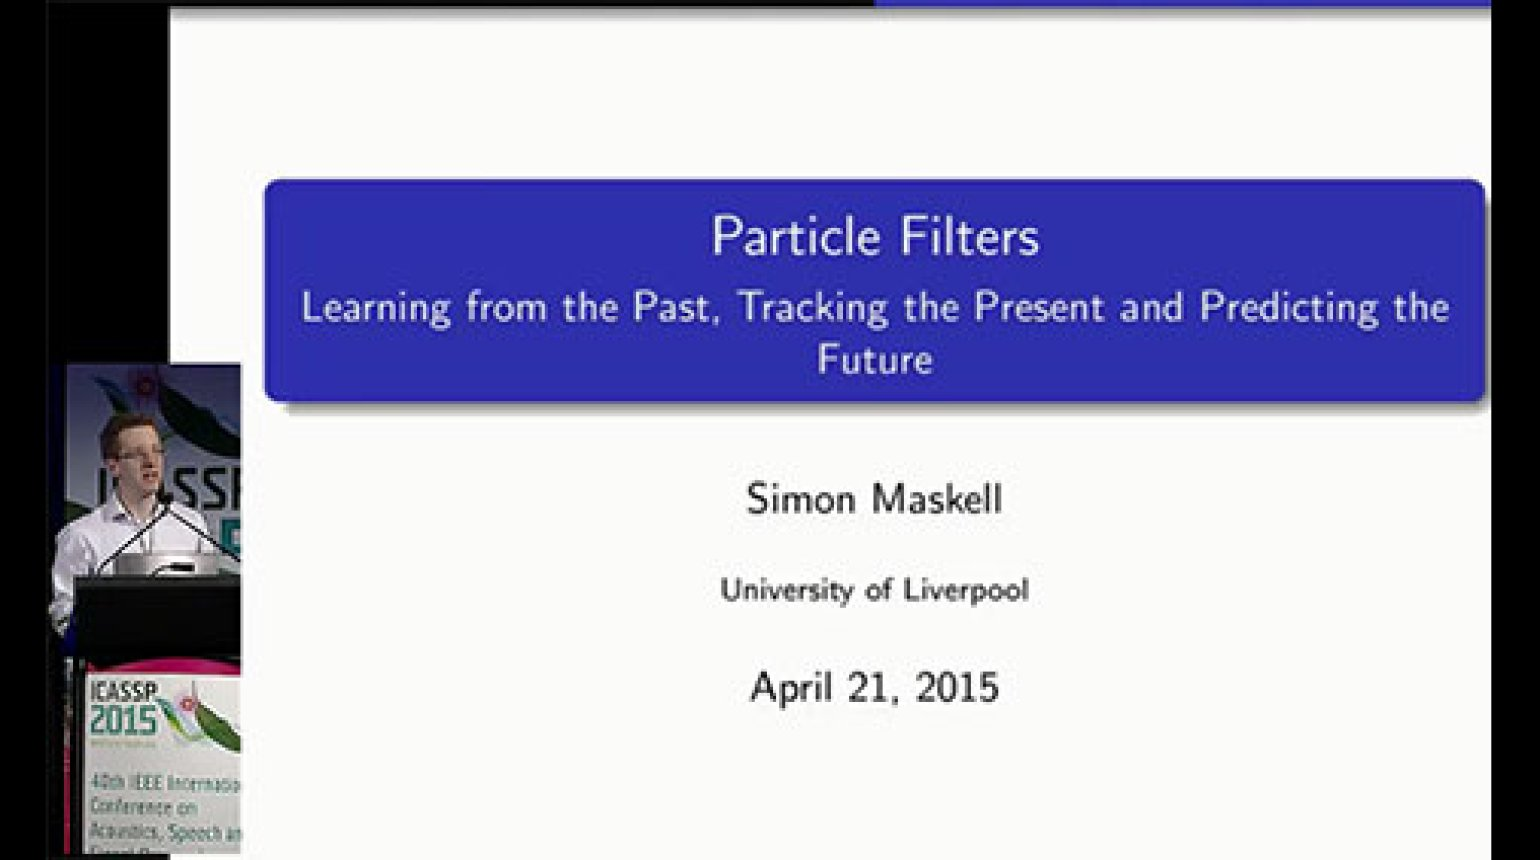 Particle Filters: Learning from the Past, Tracking the Present, and Predicting the Future (ICASSP 2015)